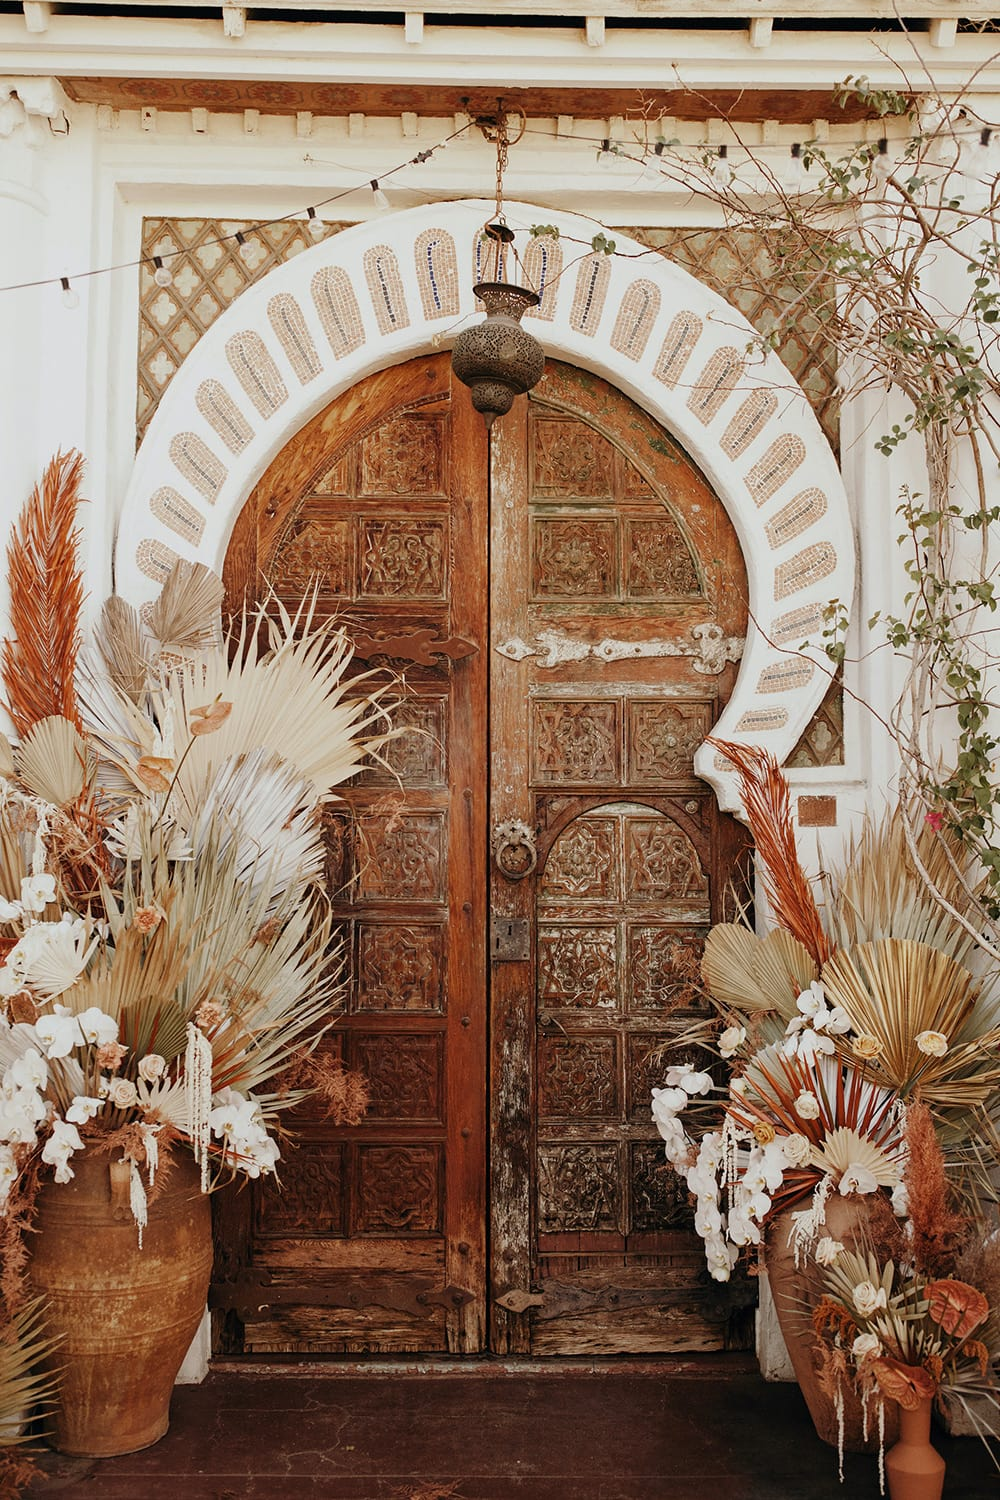 Boho Rust & White Wedding Ideas | An ornately carved wooden door inspired by Moroccan architecture used as a boho wedding ceremony backdrop. It is framed by large ceramic pots filled with wild floral arrangements consisting of dried palm leaves and anthurium in earthy colours, white orchids, amaranthus and roses. | Photography: Jordan Voth via Foxtail Florals